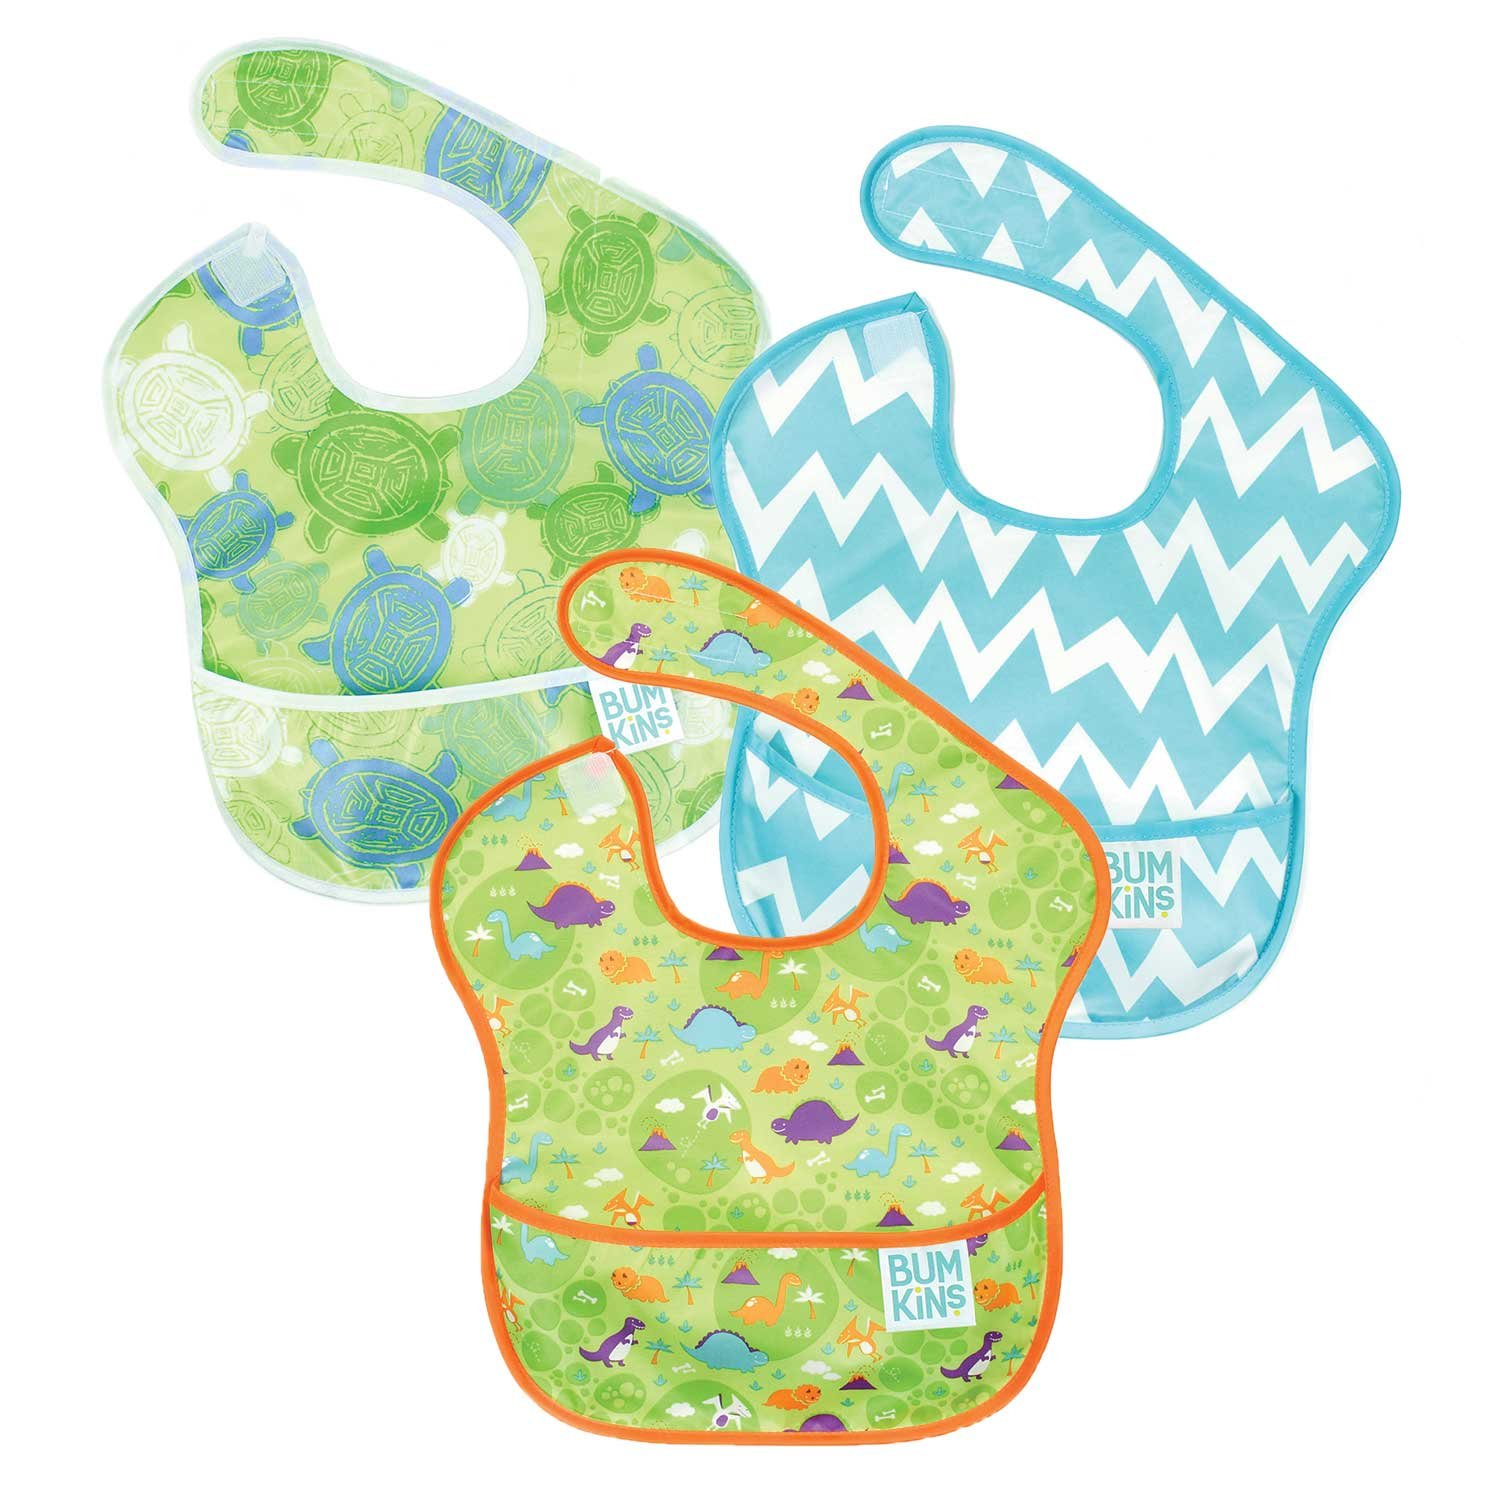 Bumkins Waterproof SuperBib 3 Pack, Boy (B09-Turtle/Dino/Blue Chevron) (6-24 Months)